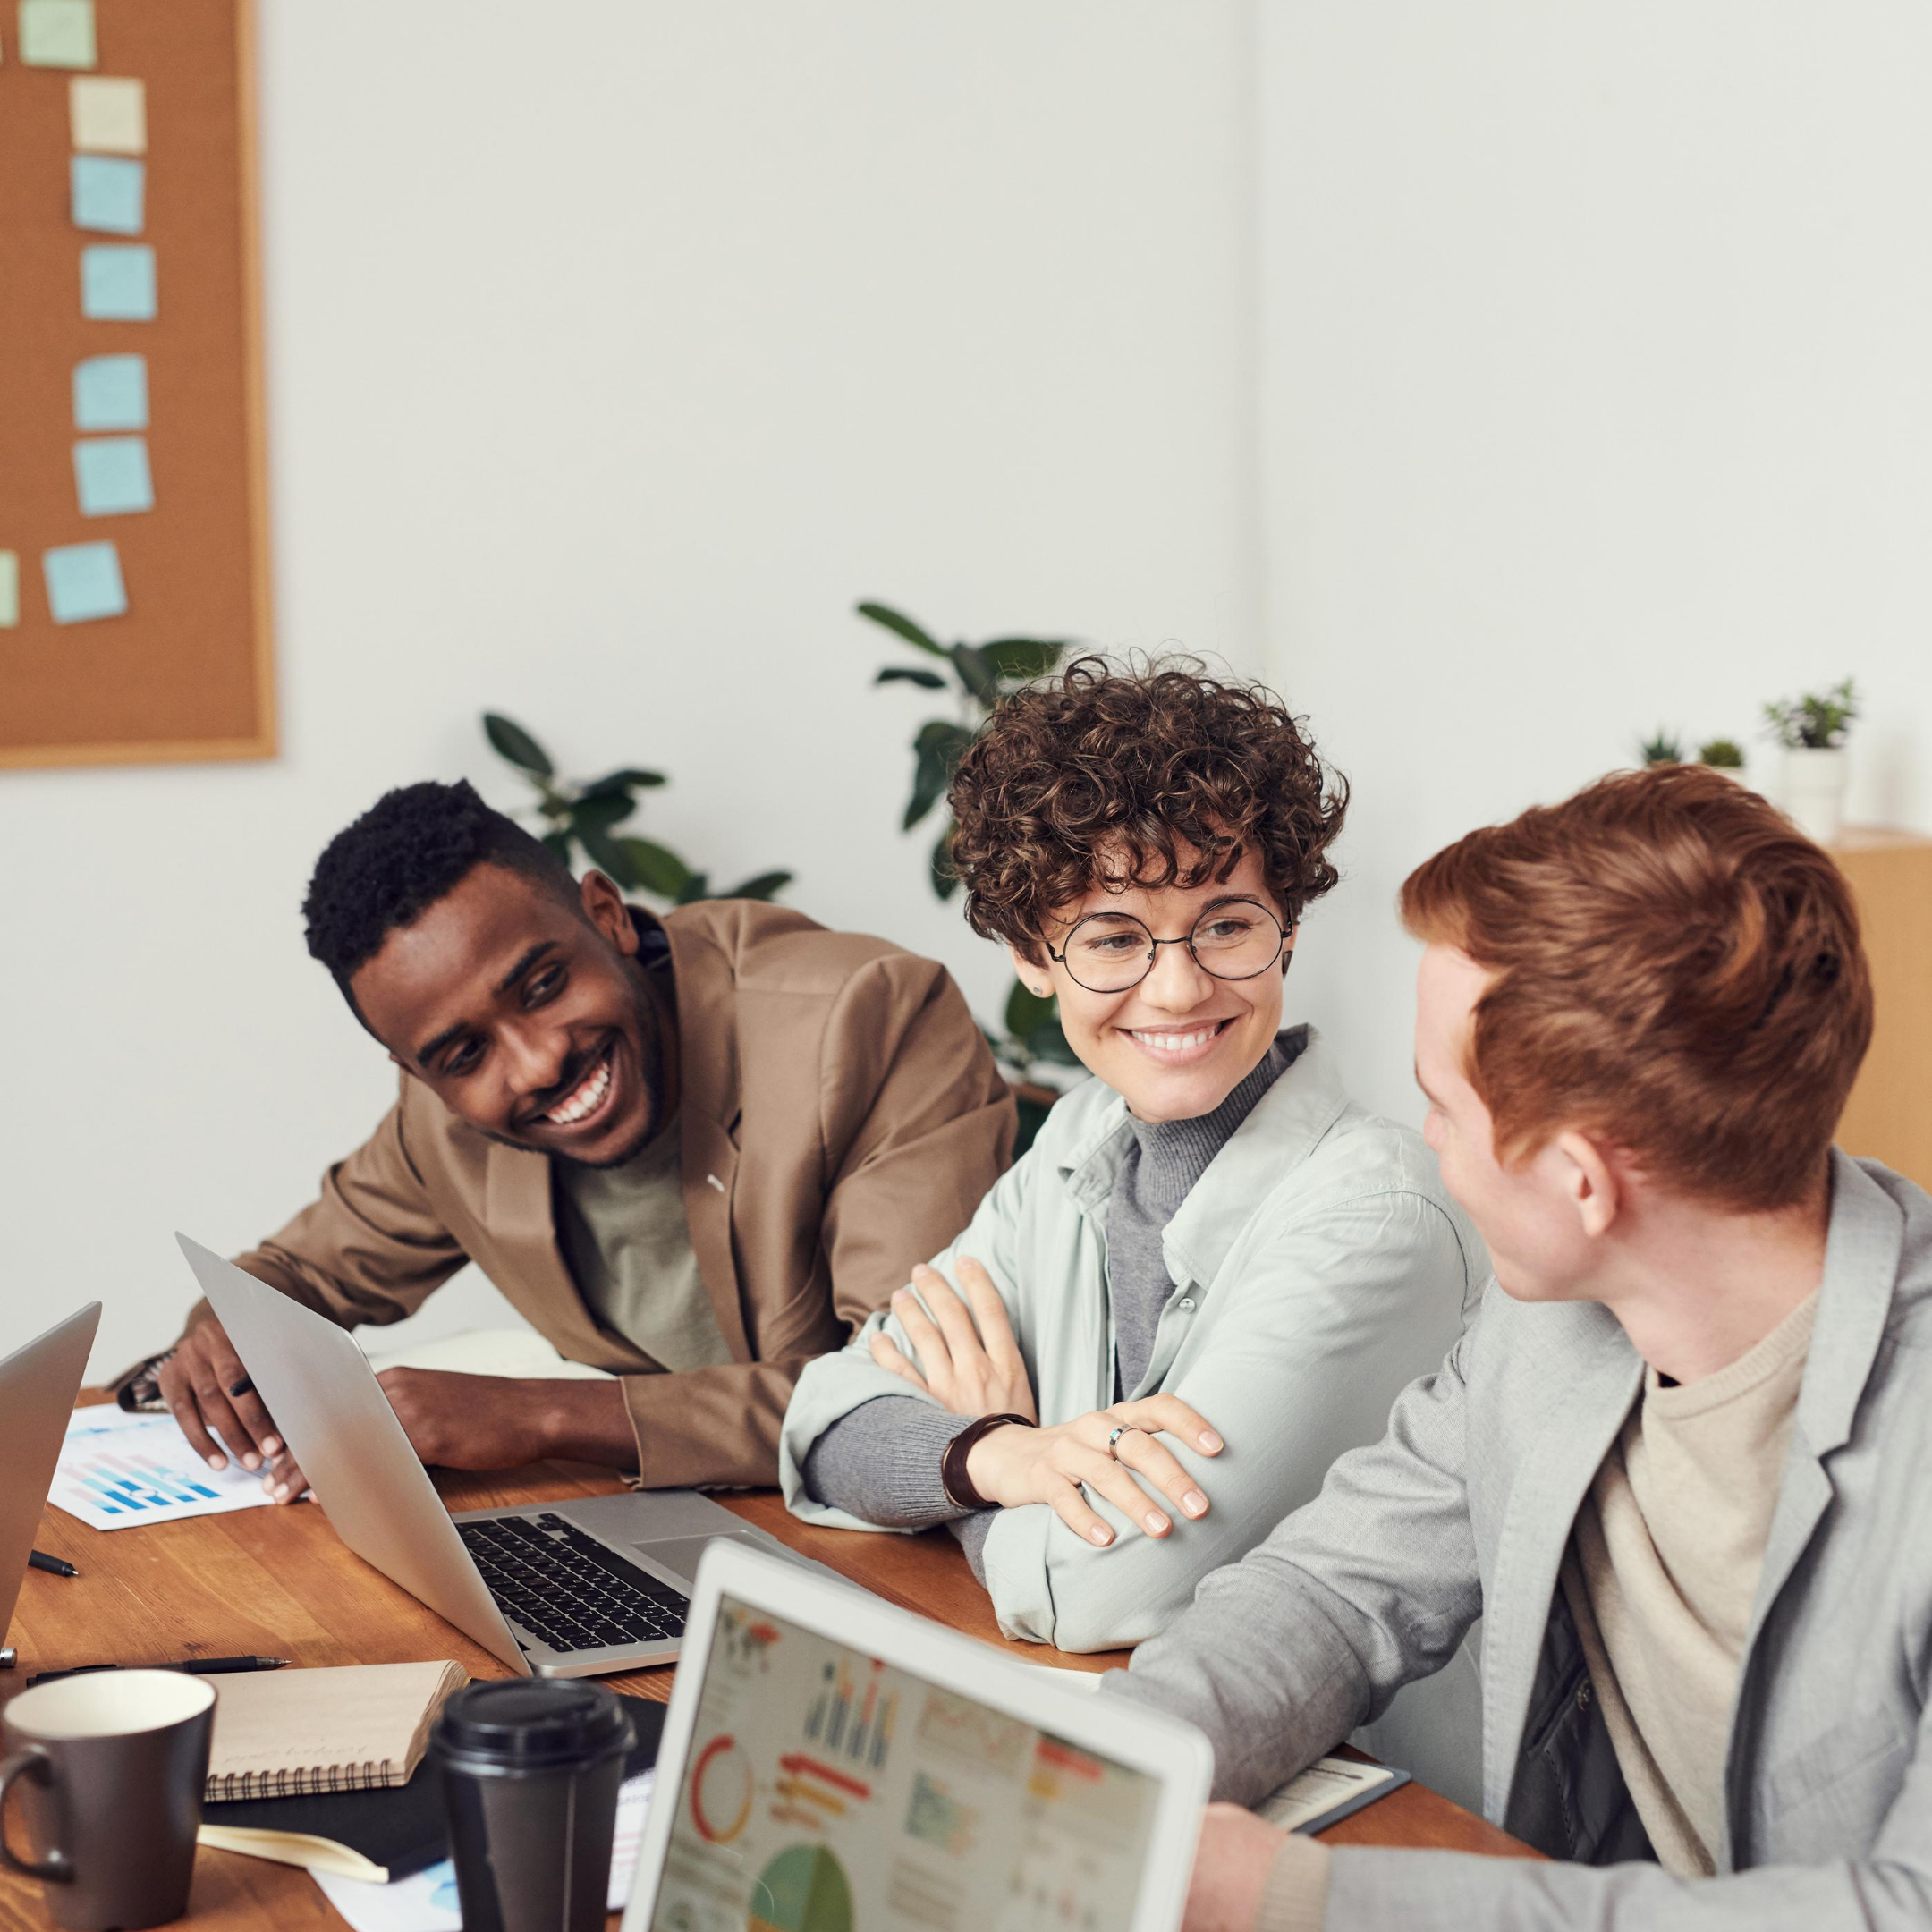 """Three people smiling at wooden desk with notebooks, open computers and coffee with white background and corkboard and plants all in professional attire, represents """"Identify A Study Group"""" program"""